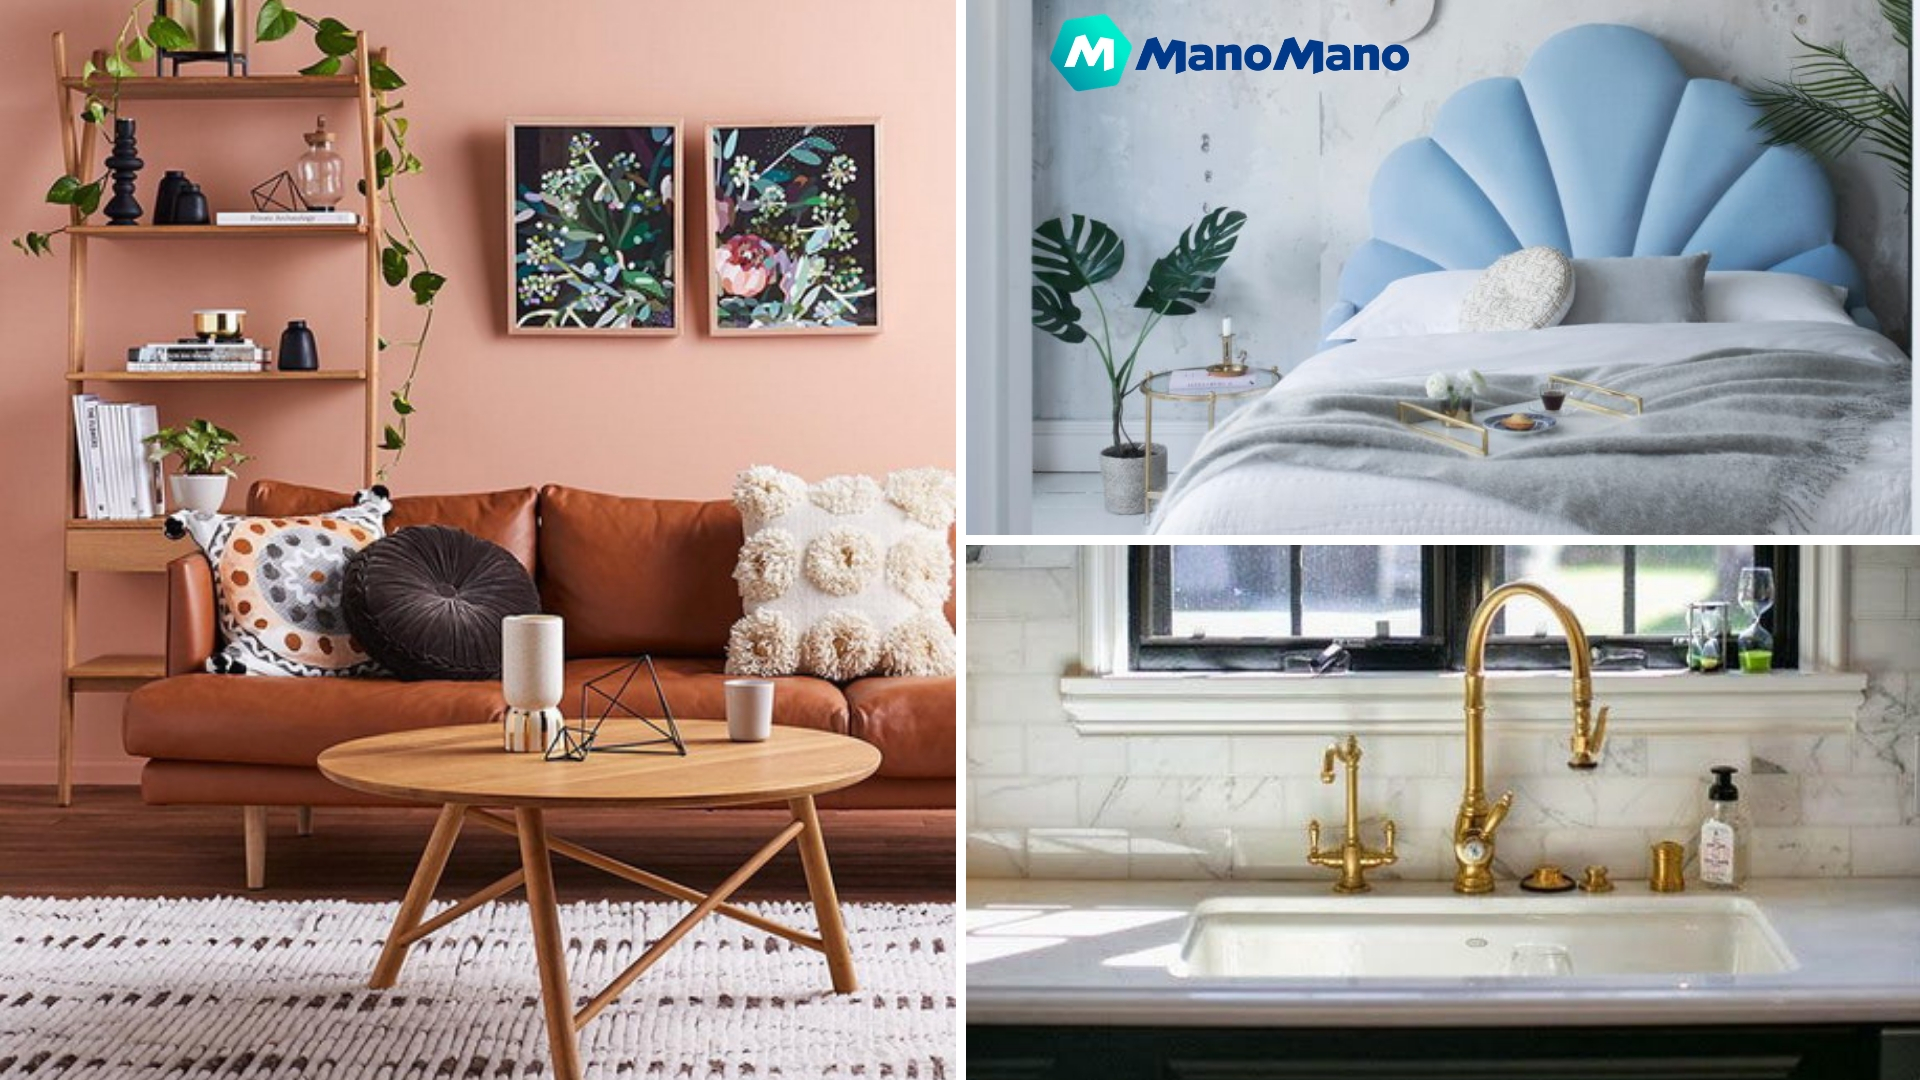 Top 10 Interior Design Trends 2019 The Handy Mano